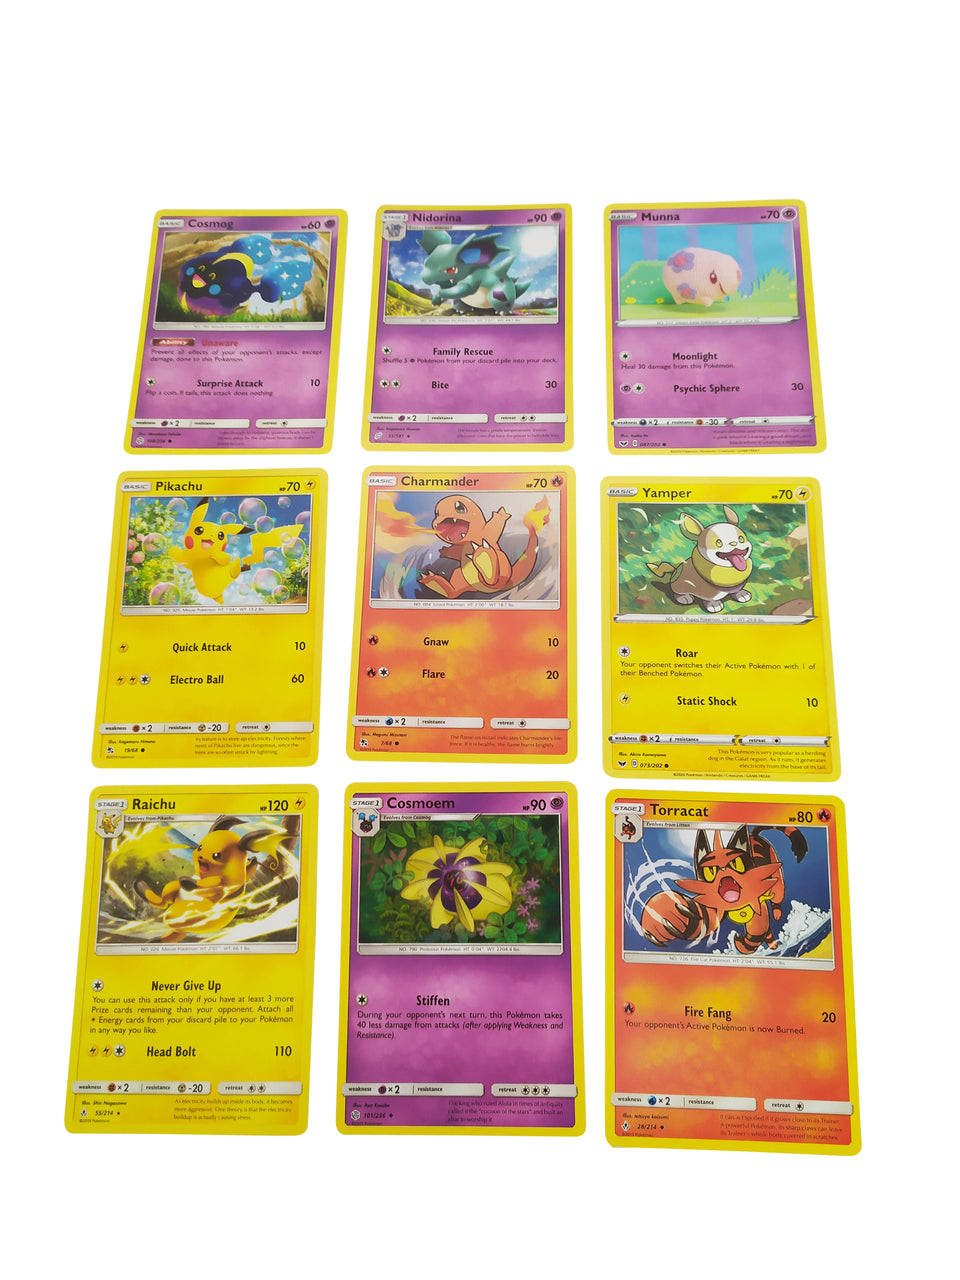 9 lot of pokemon cards - included : Cosmog , Pikachu , Raichu , cosmoem , Charmander , Nidorina , Munna , Yamper , Torracat